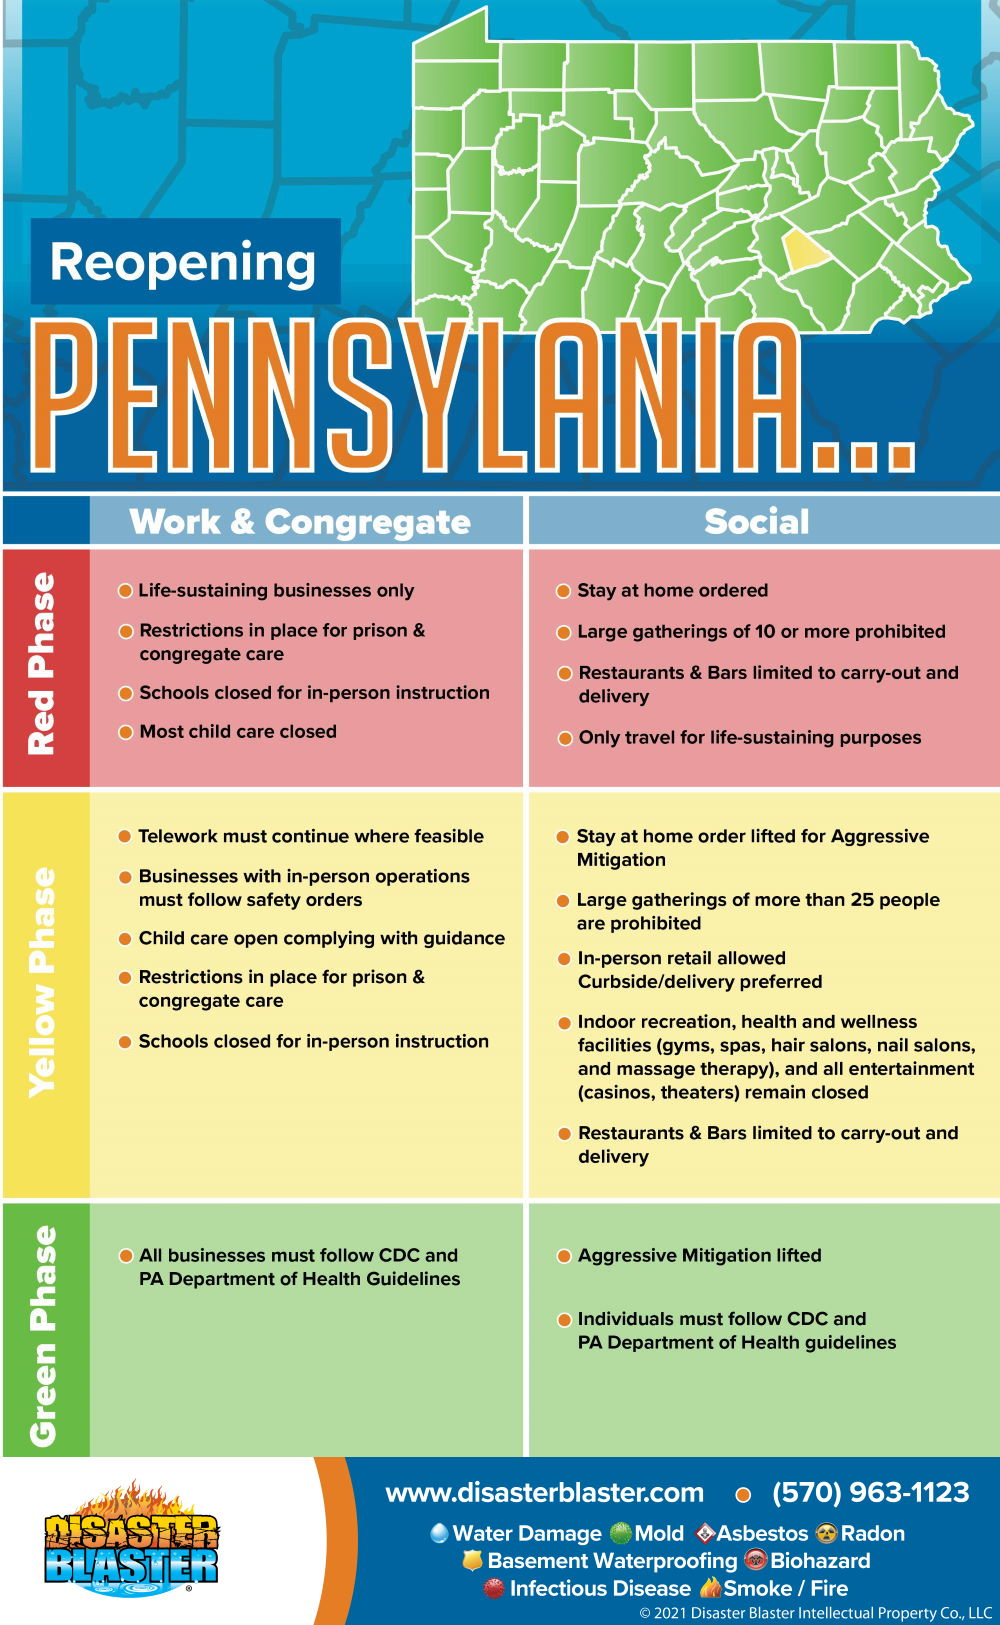 Reopening Pennsylvania after Coronavirus phases 6/26/20